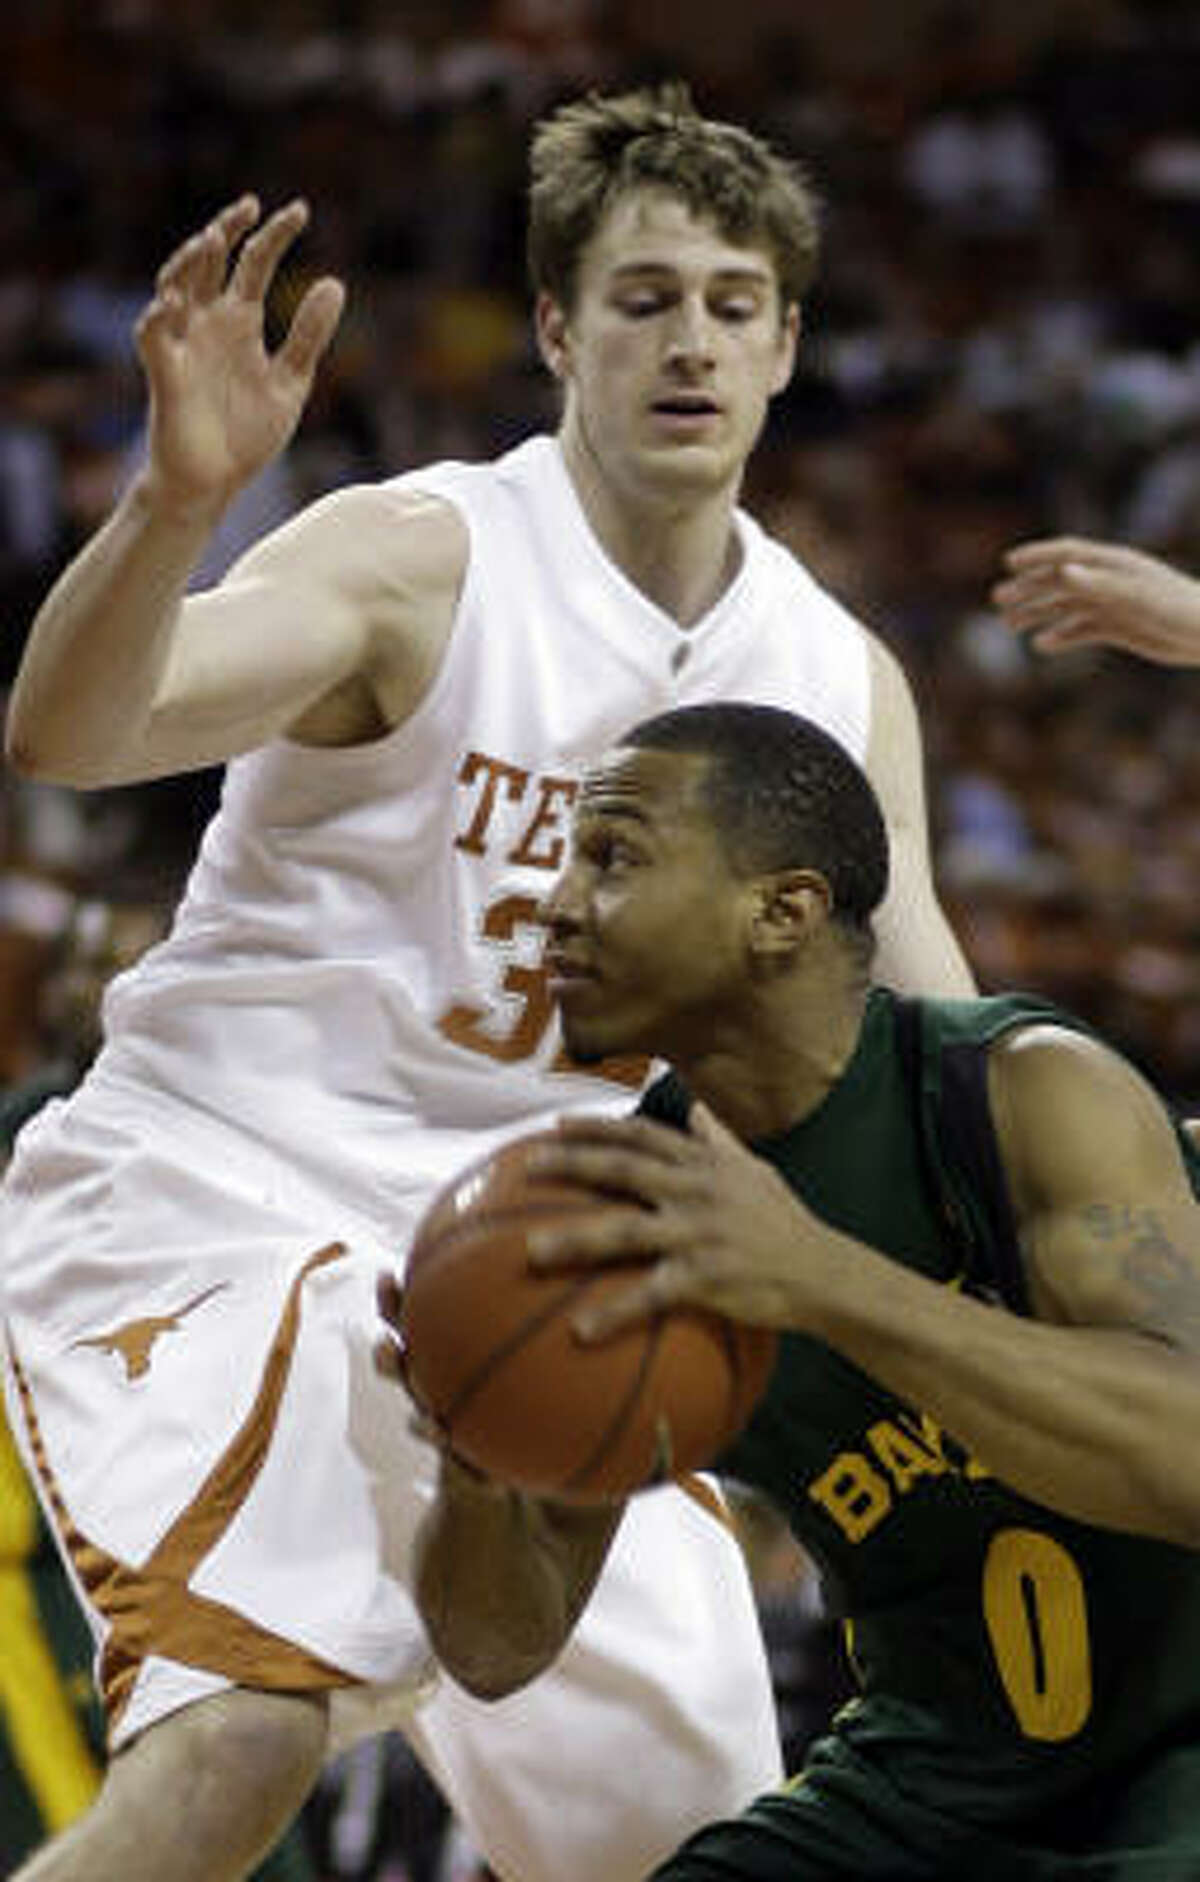 Baylor guard Curtis Jerrells, right, tries to get around Texas center Connor Atchley during the first half of Monday's game in Austin. Jerrells scored 14 points, but it wasn't enough to keep Baylor from dropping a 73-57 decision.